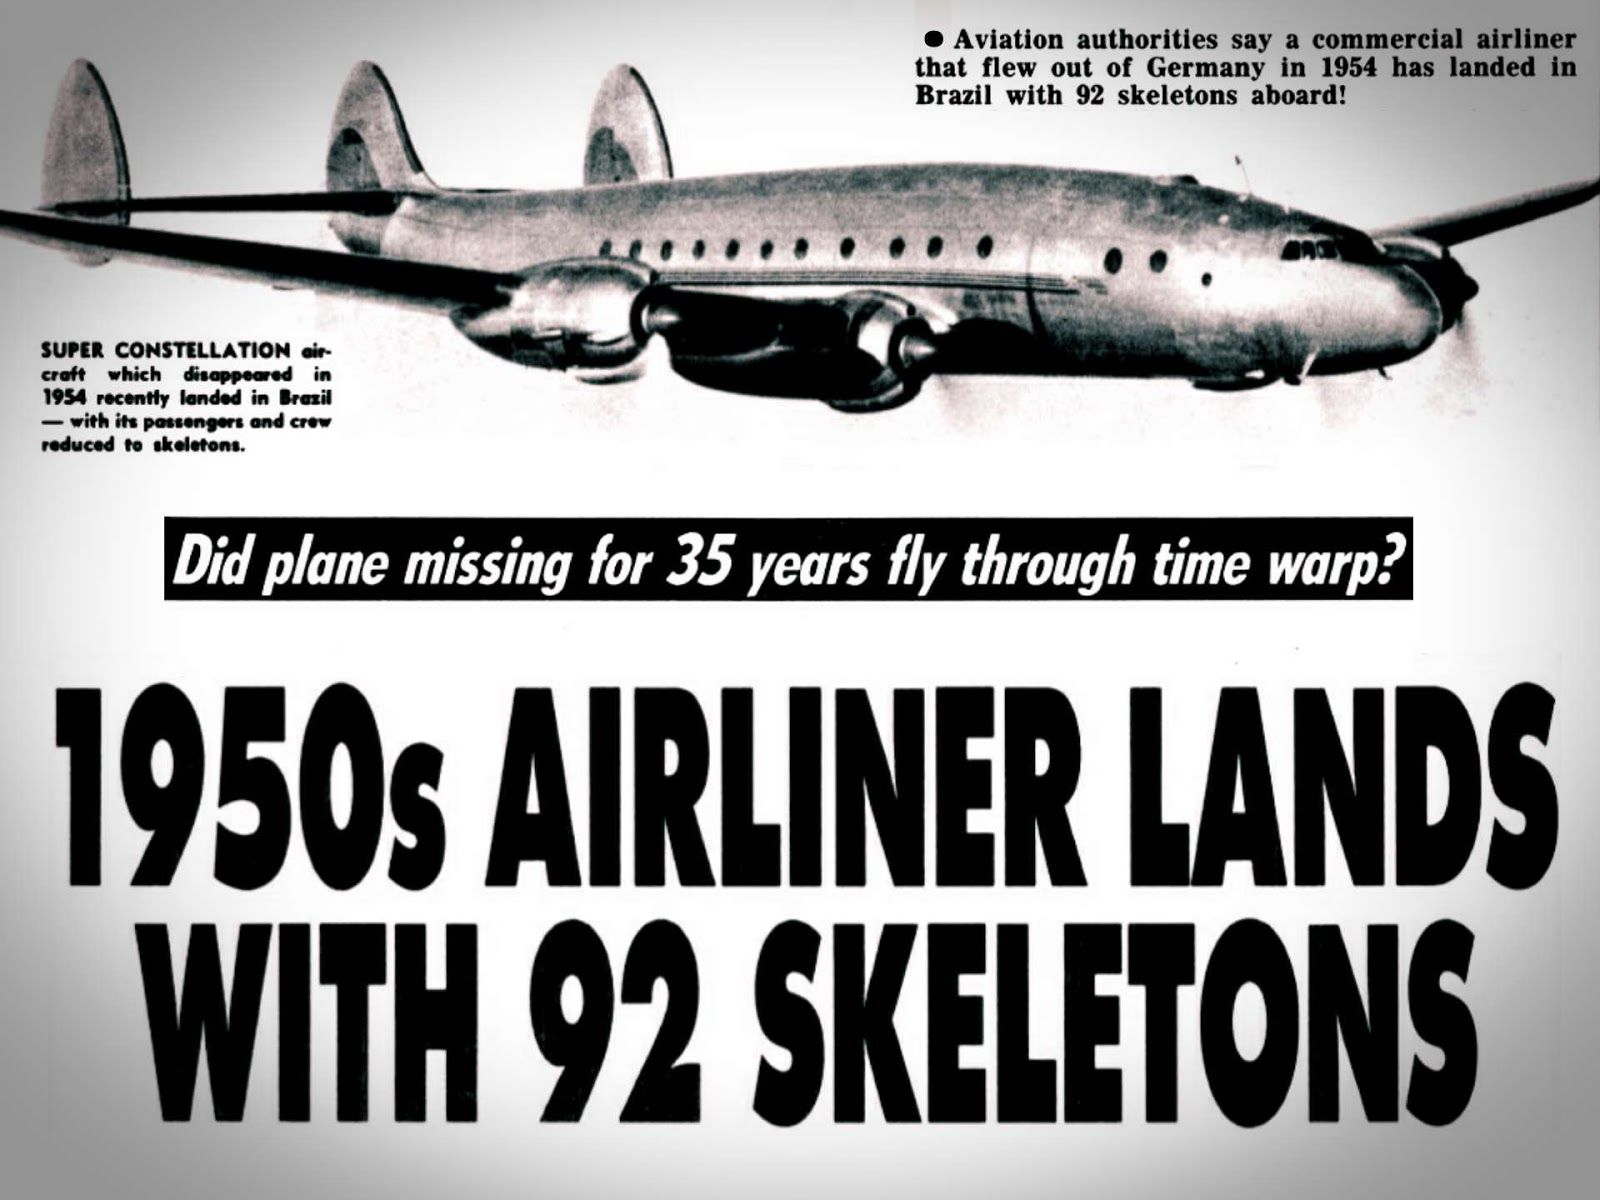 Santiago Flight 513 Took Off From Germany On September 4th 1954 And Vanished Somewhere Over The Atlantic Ocean Creepy Facts Unique Facts Weird World